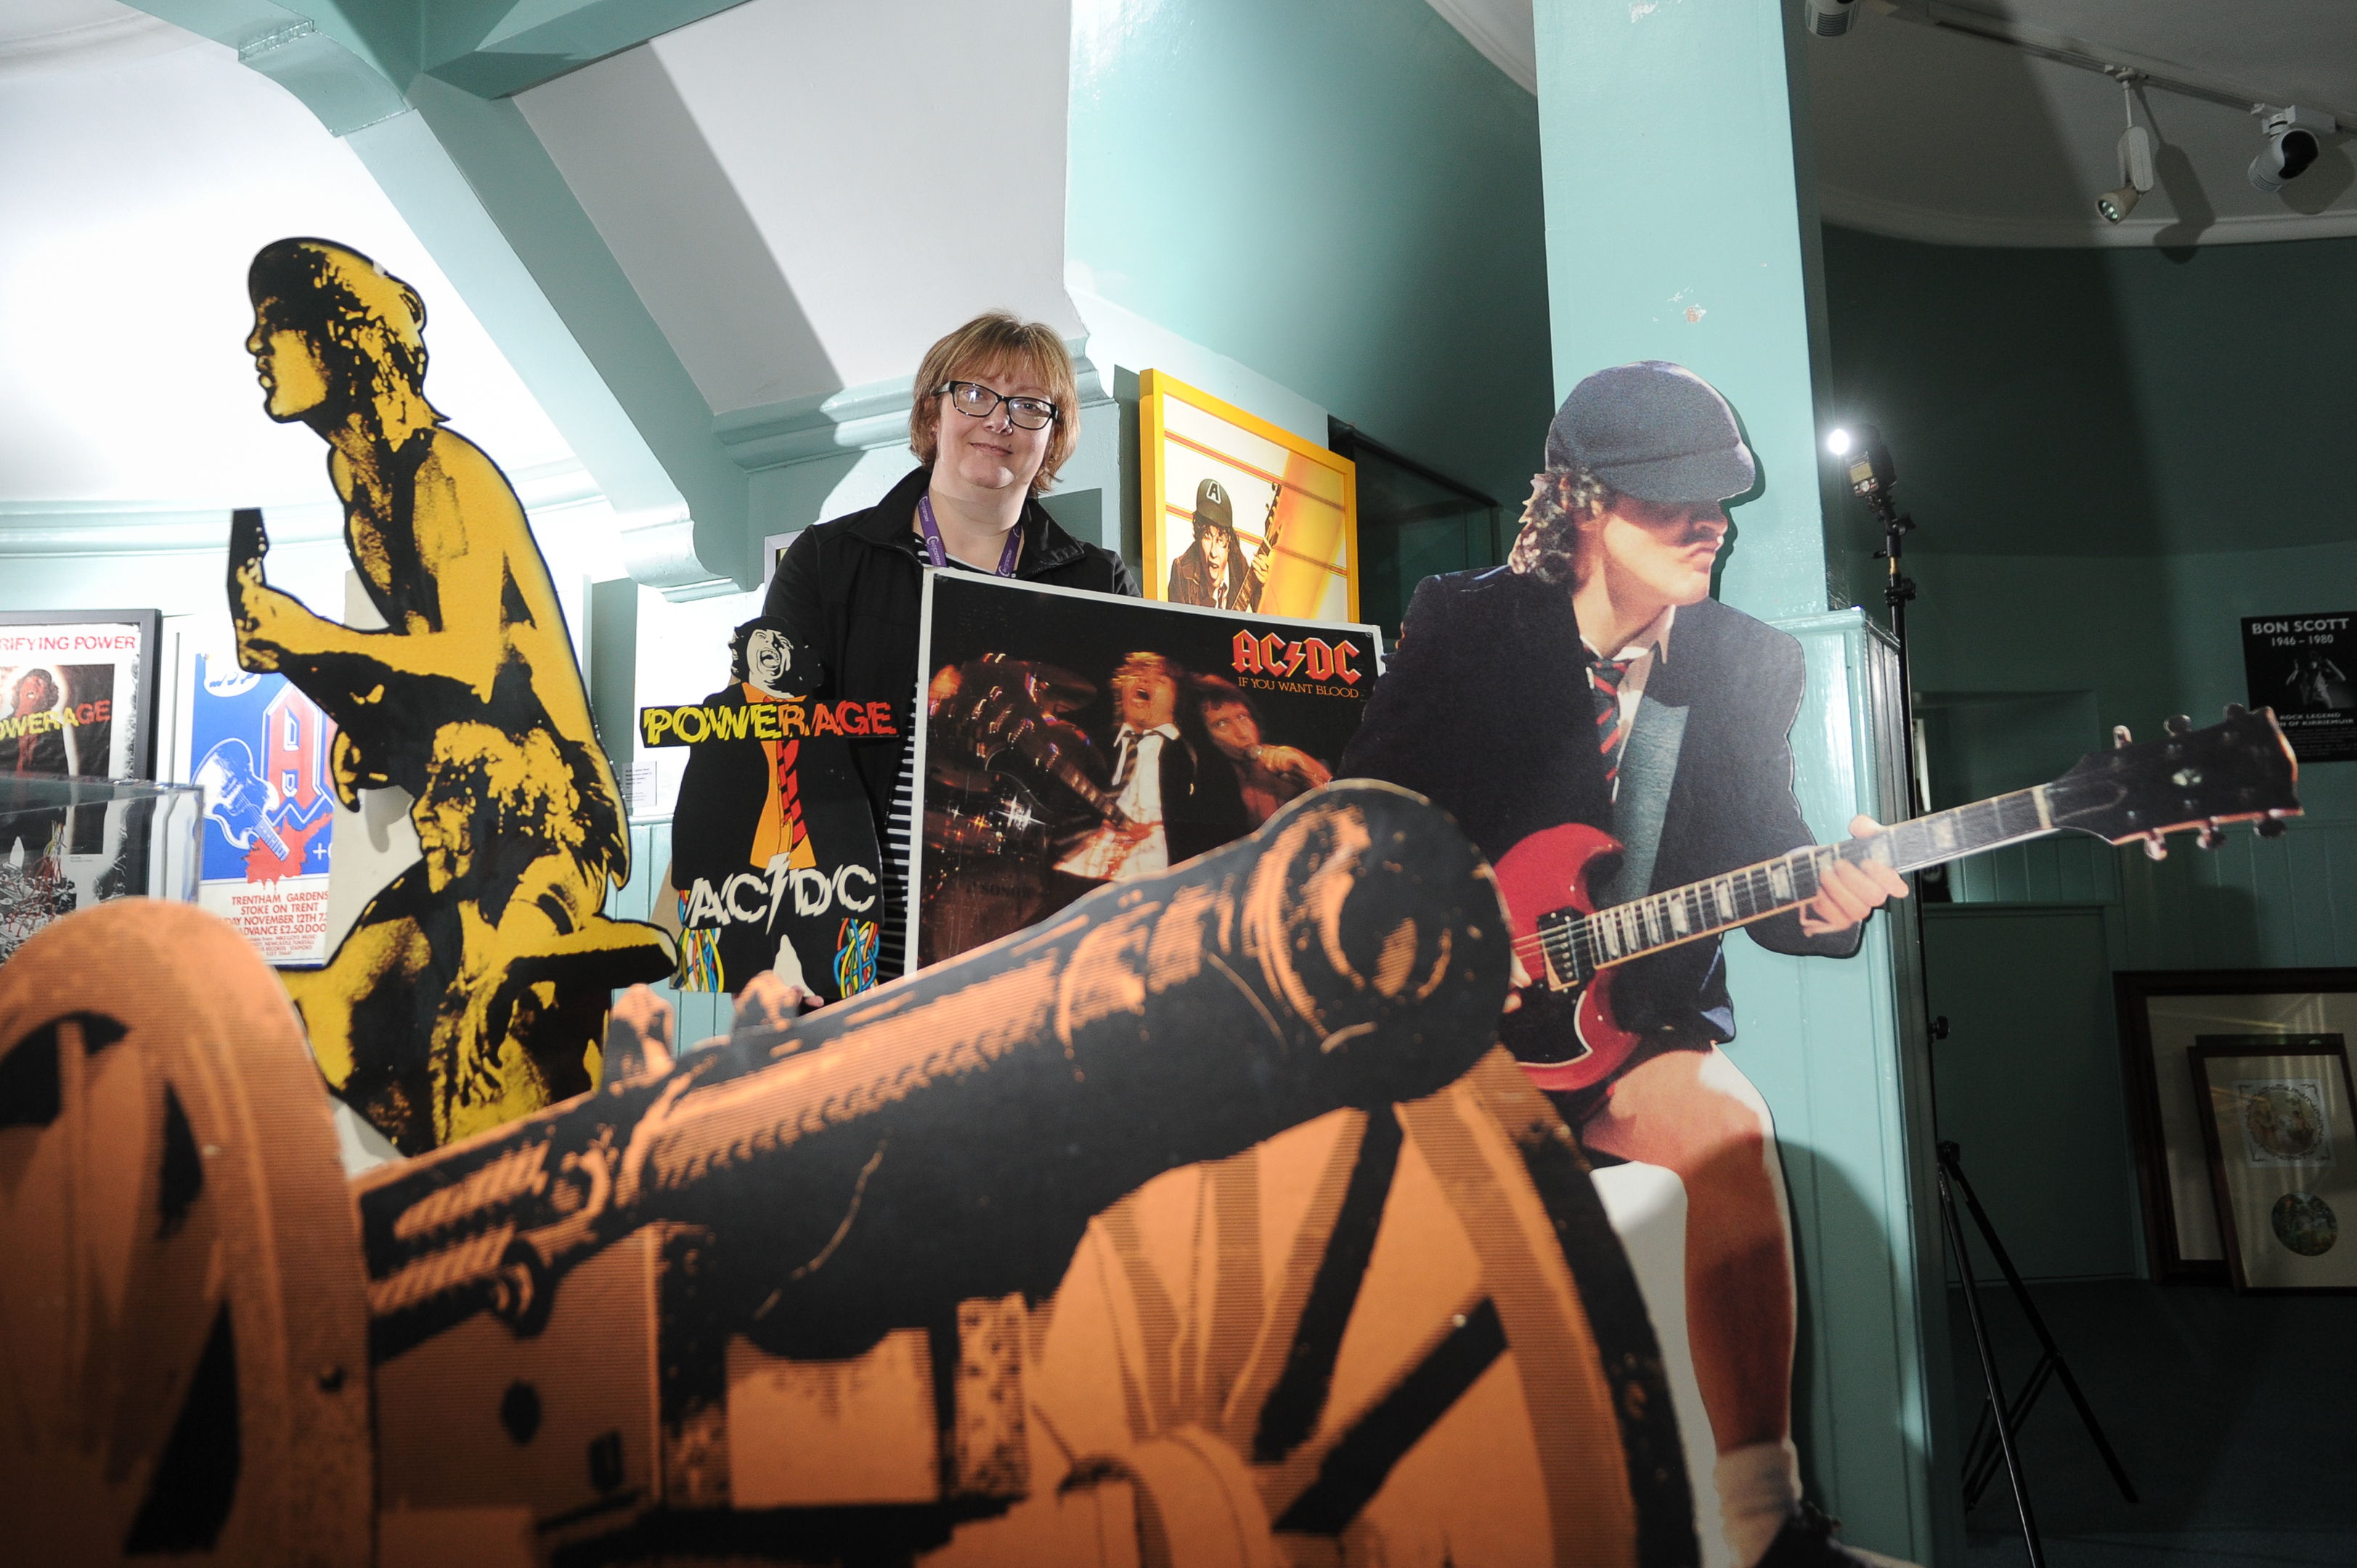 Museum officer Rachel Jackson with memorabilia from the Bon Scott exhibition being staged for this weekend's Bonfest